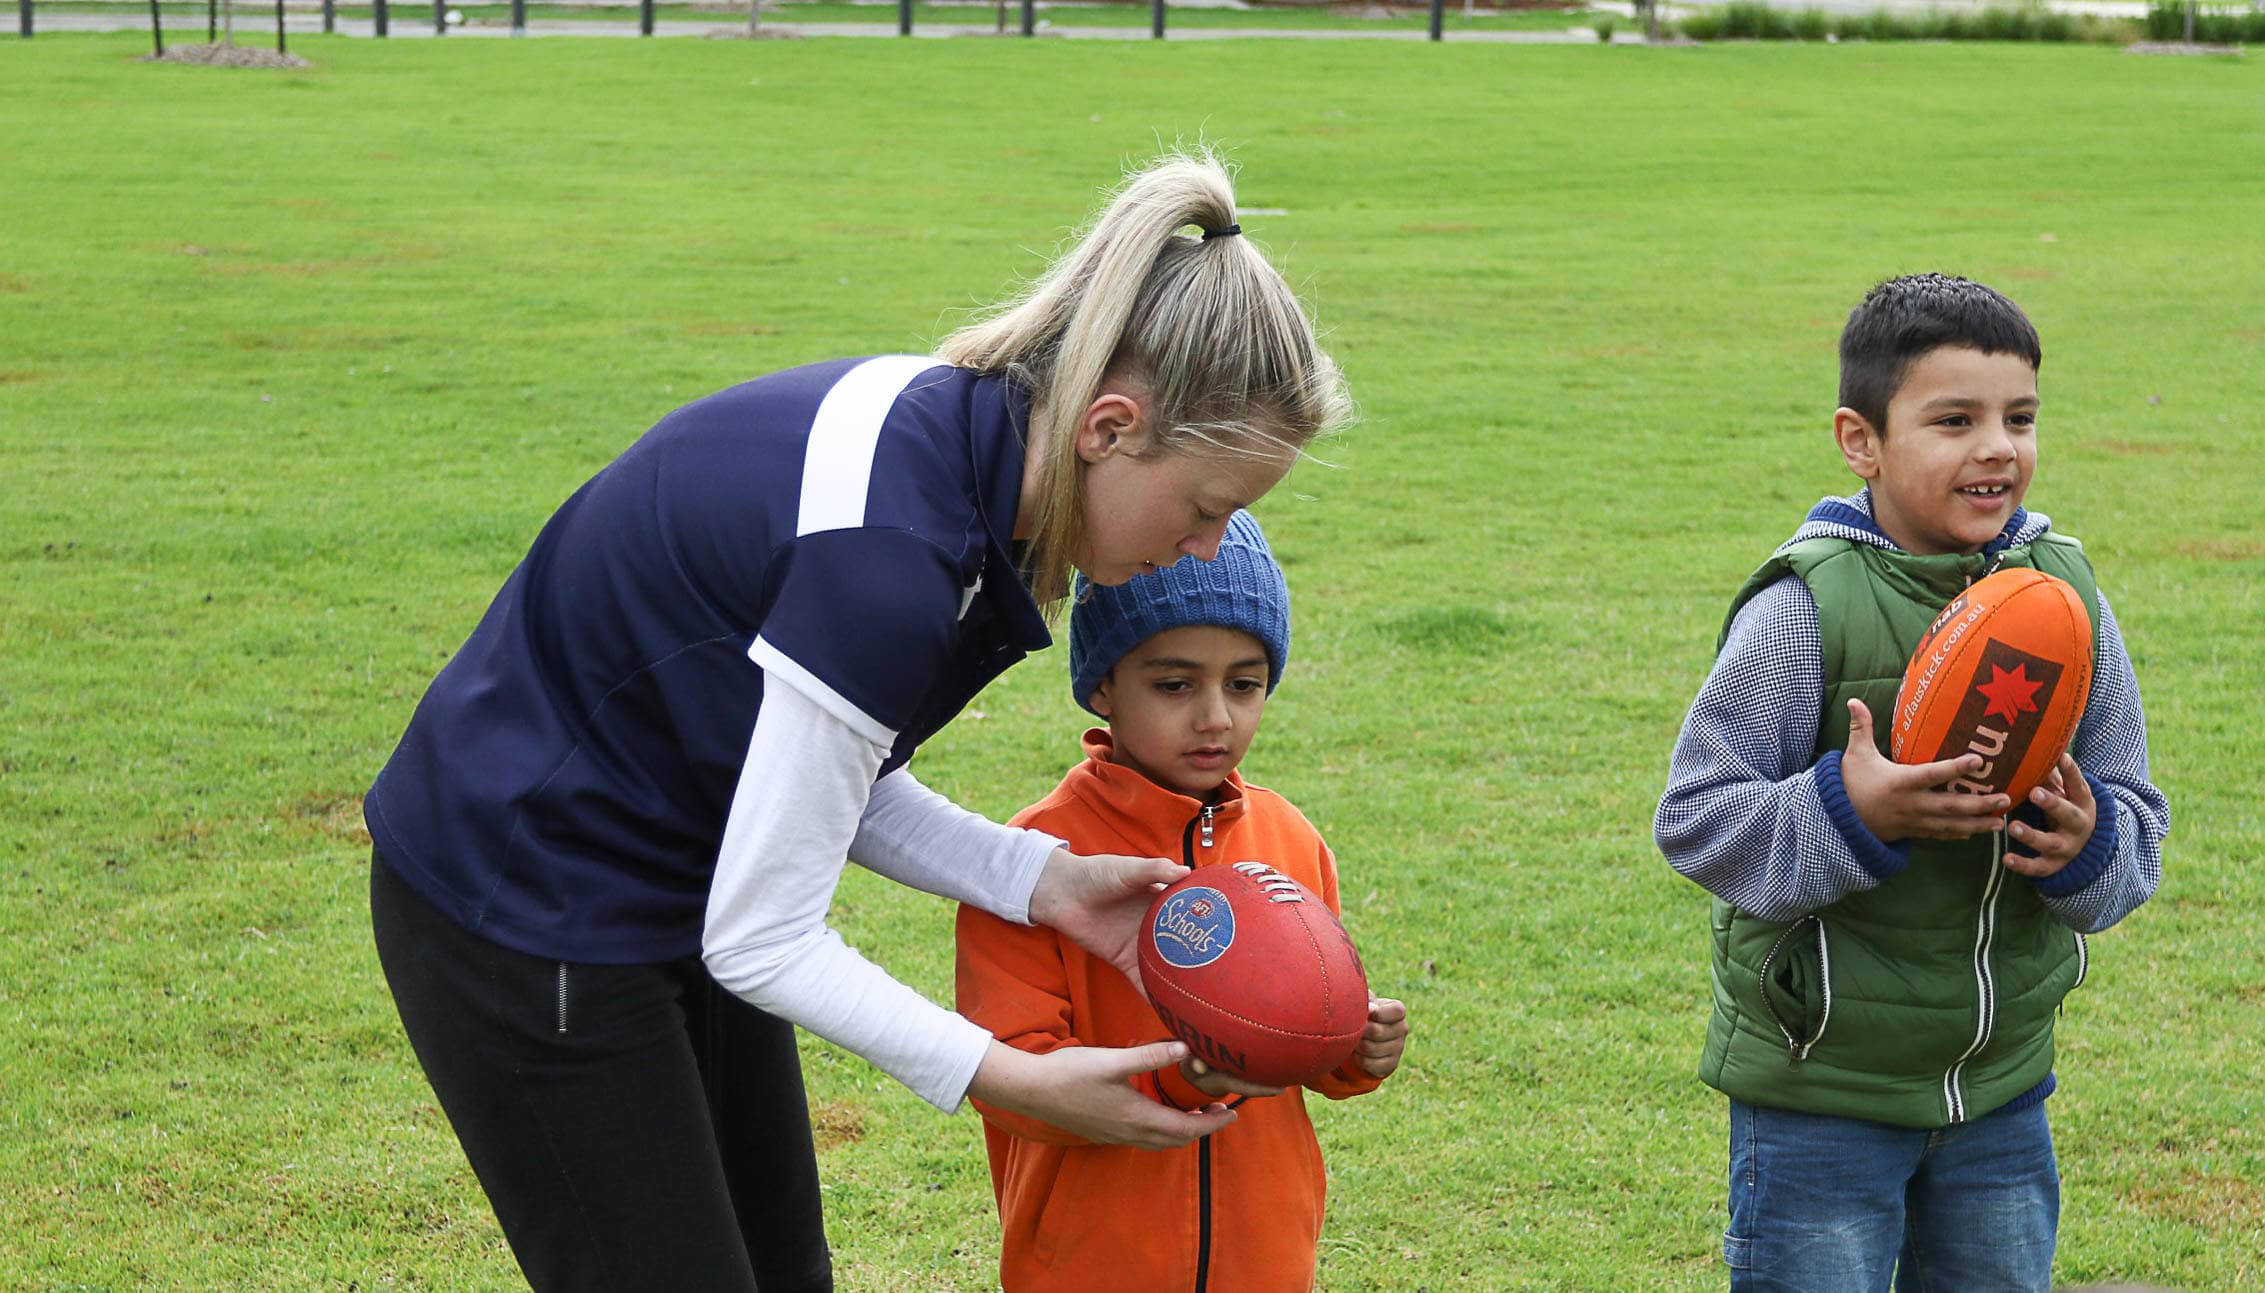 afl instructor with child